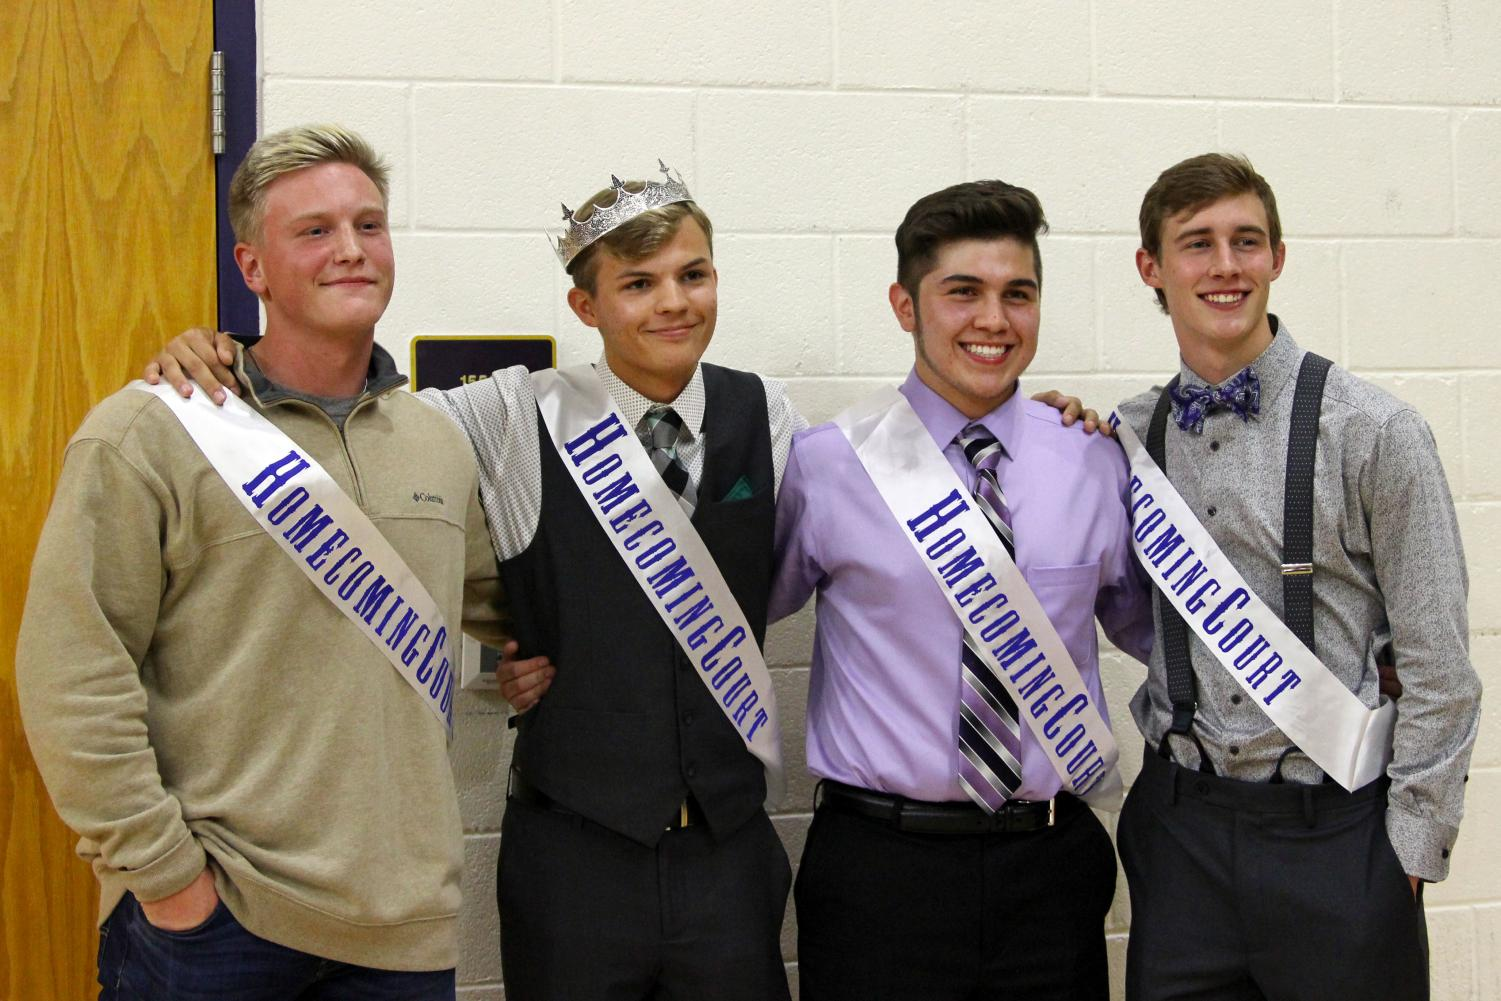 The homecoming king nominees were Clay Artho, Keaton Goss, Jarrad Gomez and Miles Huffhines. Goss was crowned during the dodgeball tournament Thursday night.